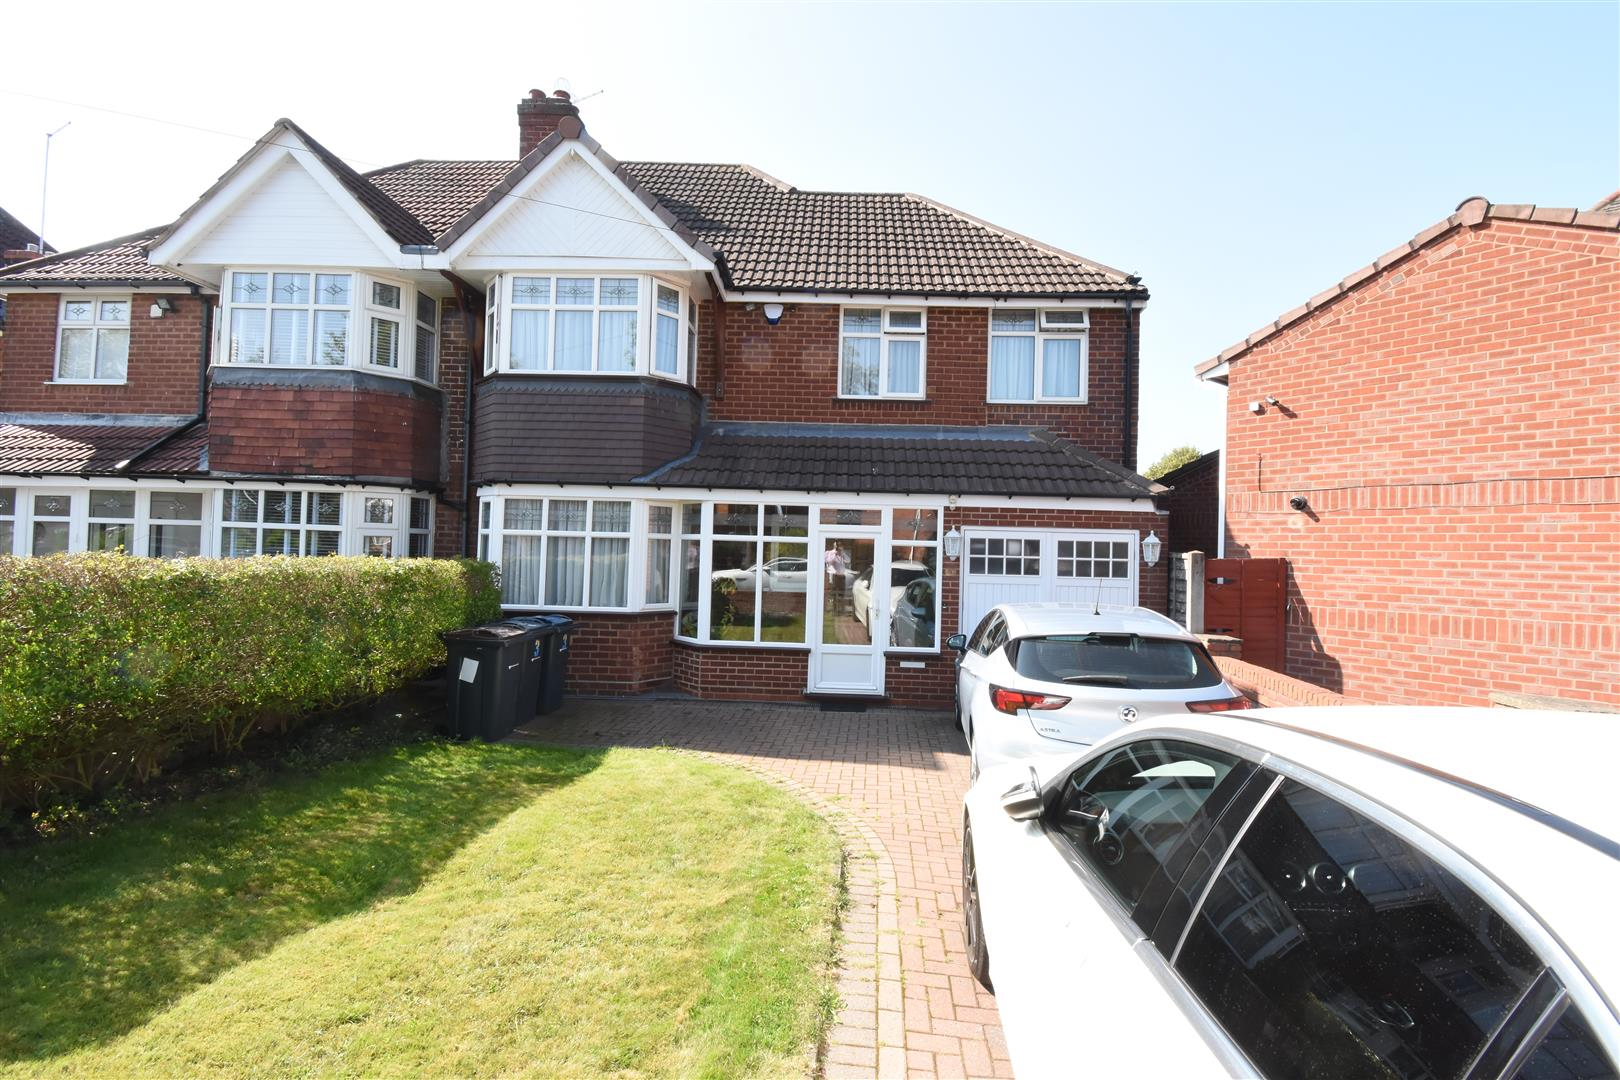 4 bed house for sale in Douglas Ave, Hodge Hill, Birmingham, B36